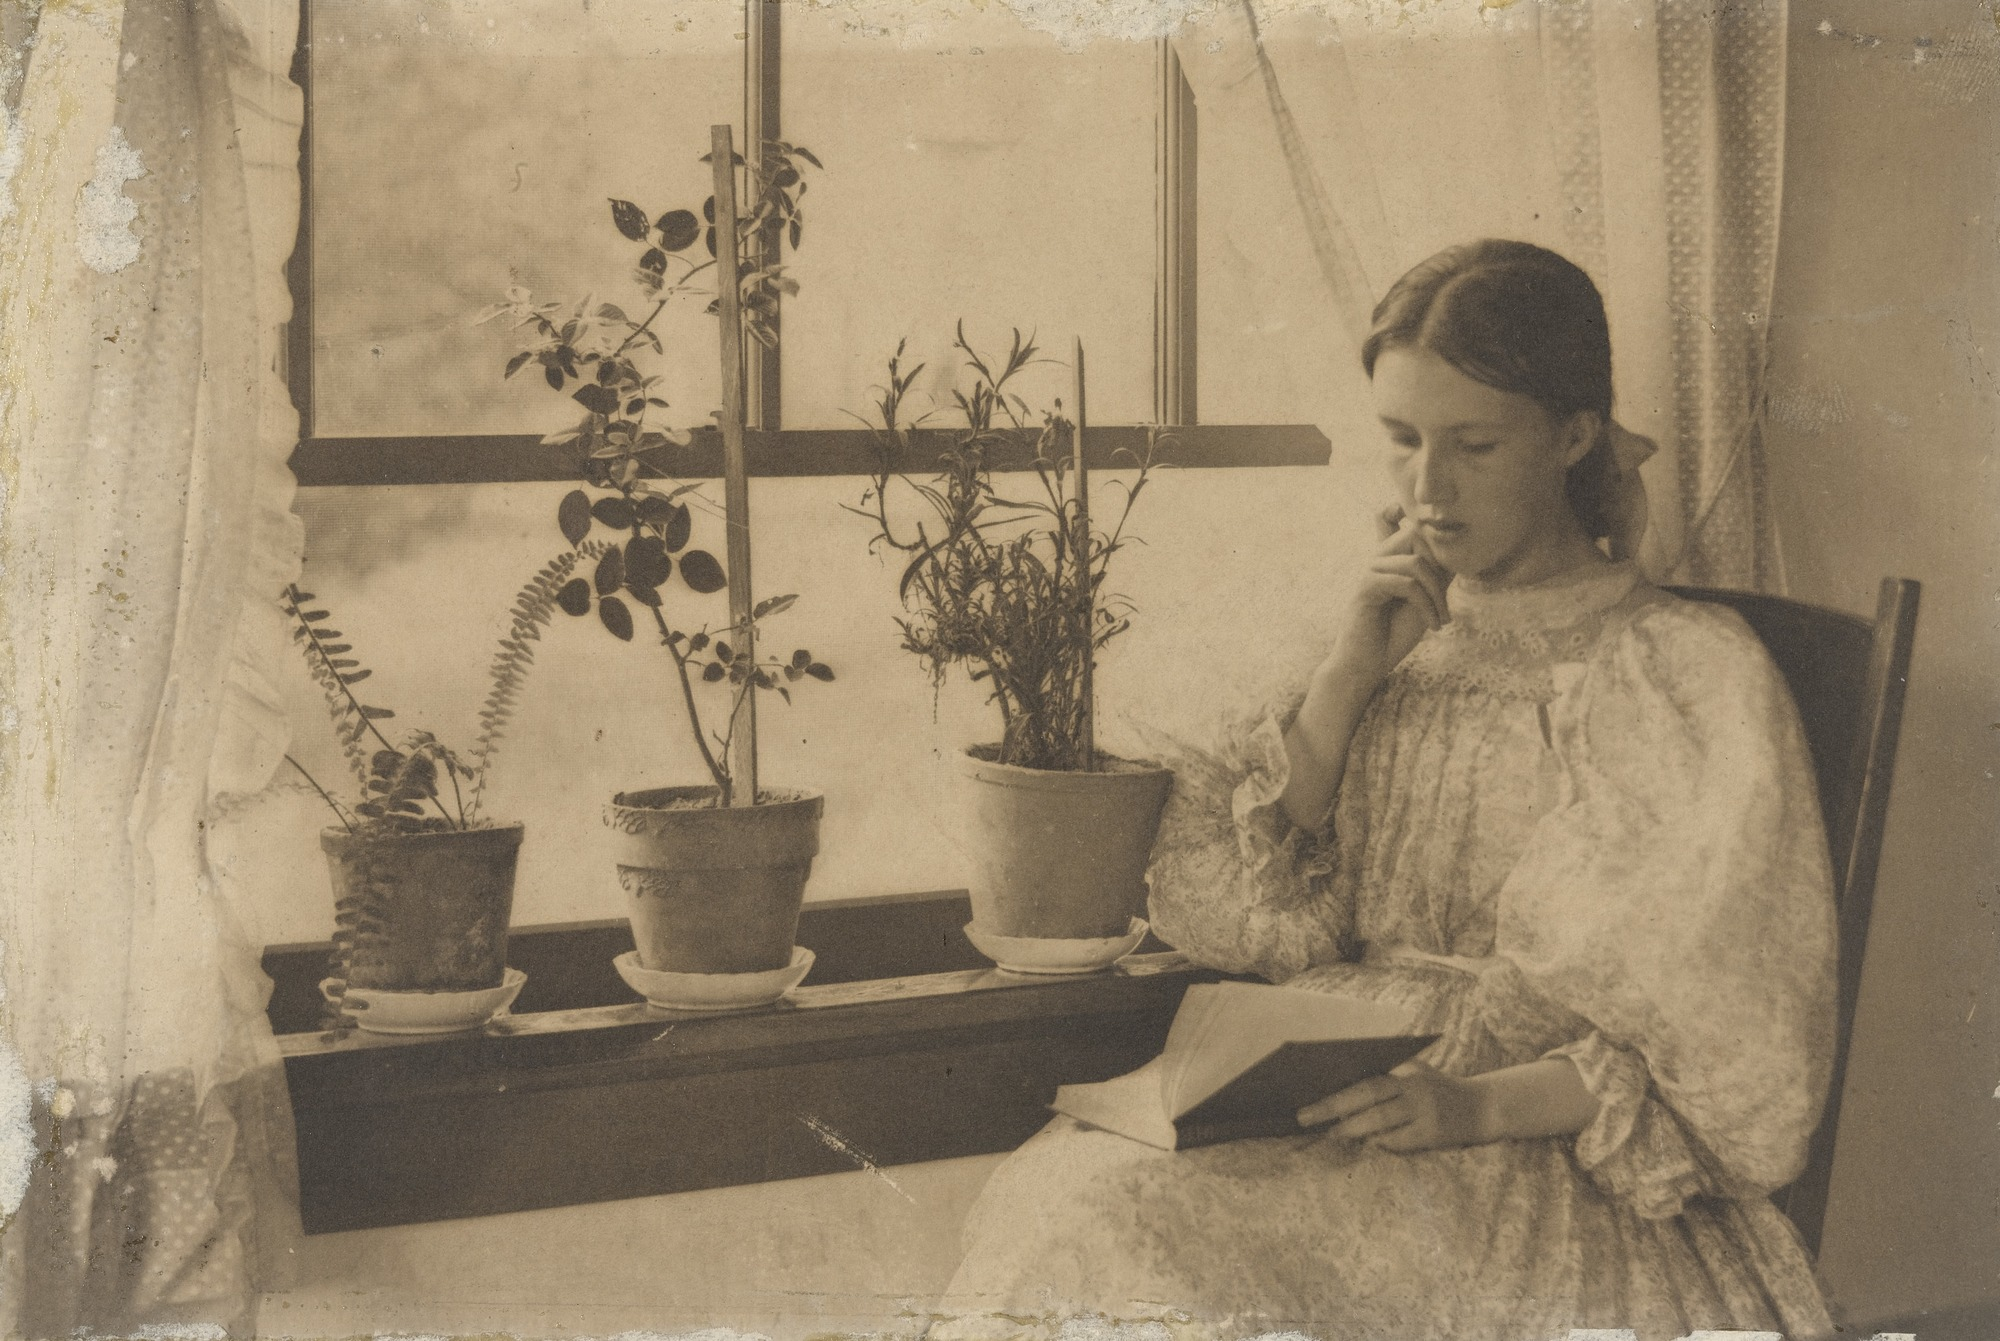 Julia McCune (Flory) reading by a window, photographed by Clarence White, 1896.